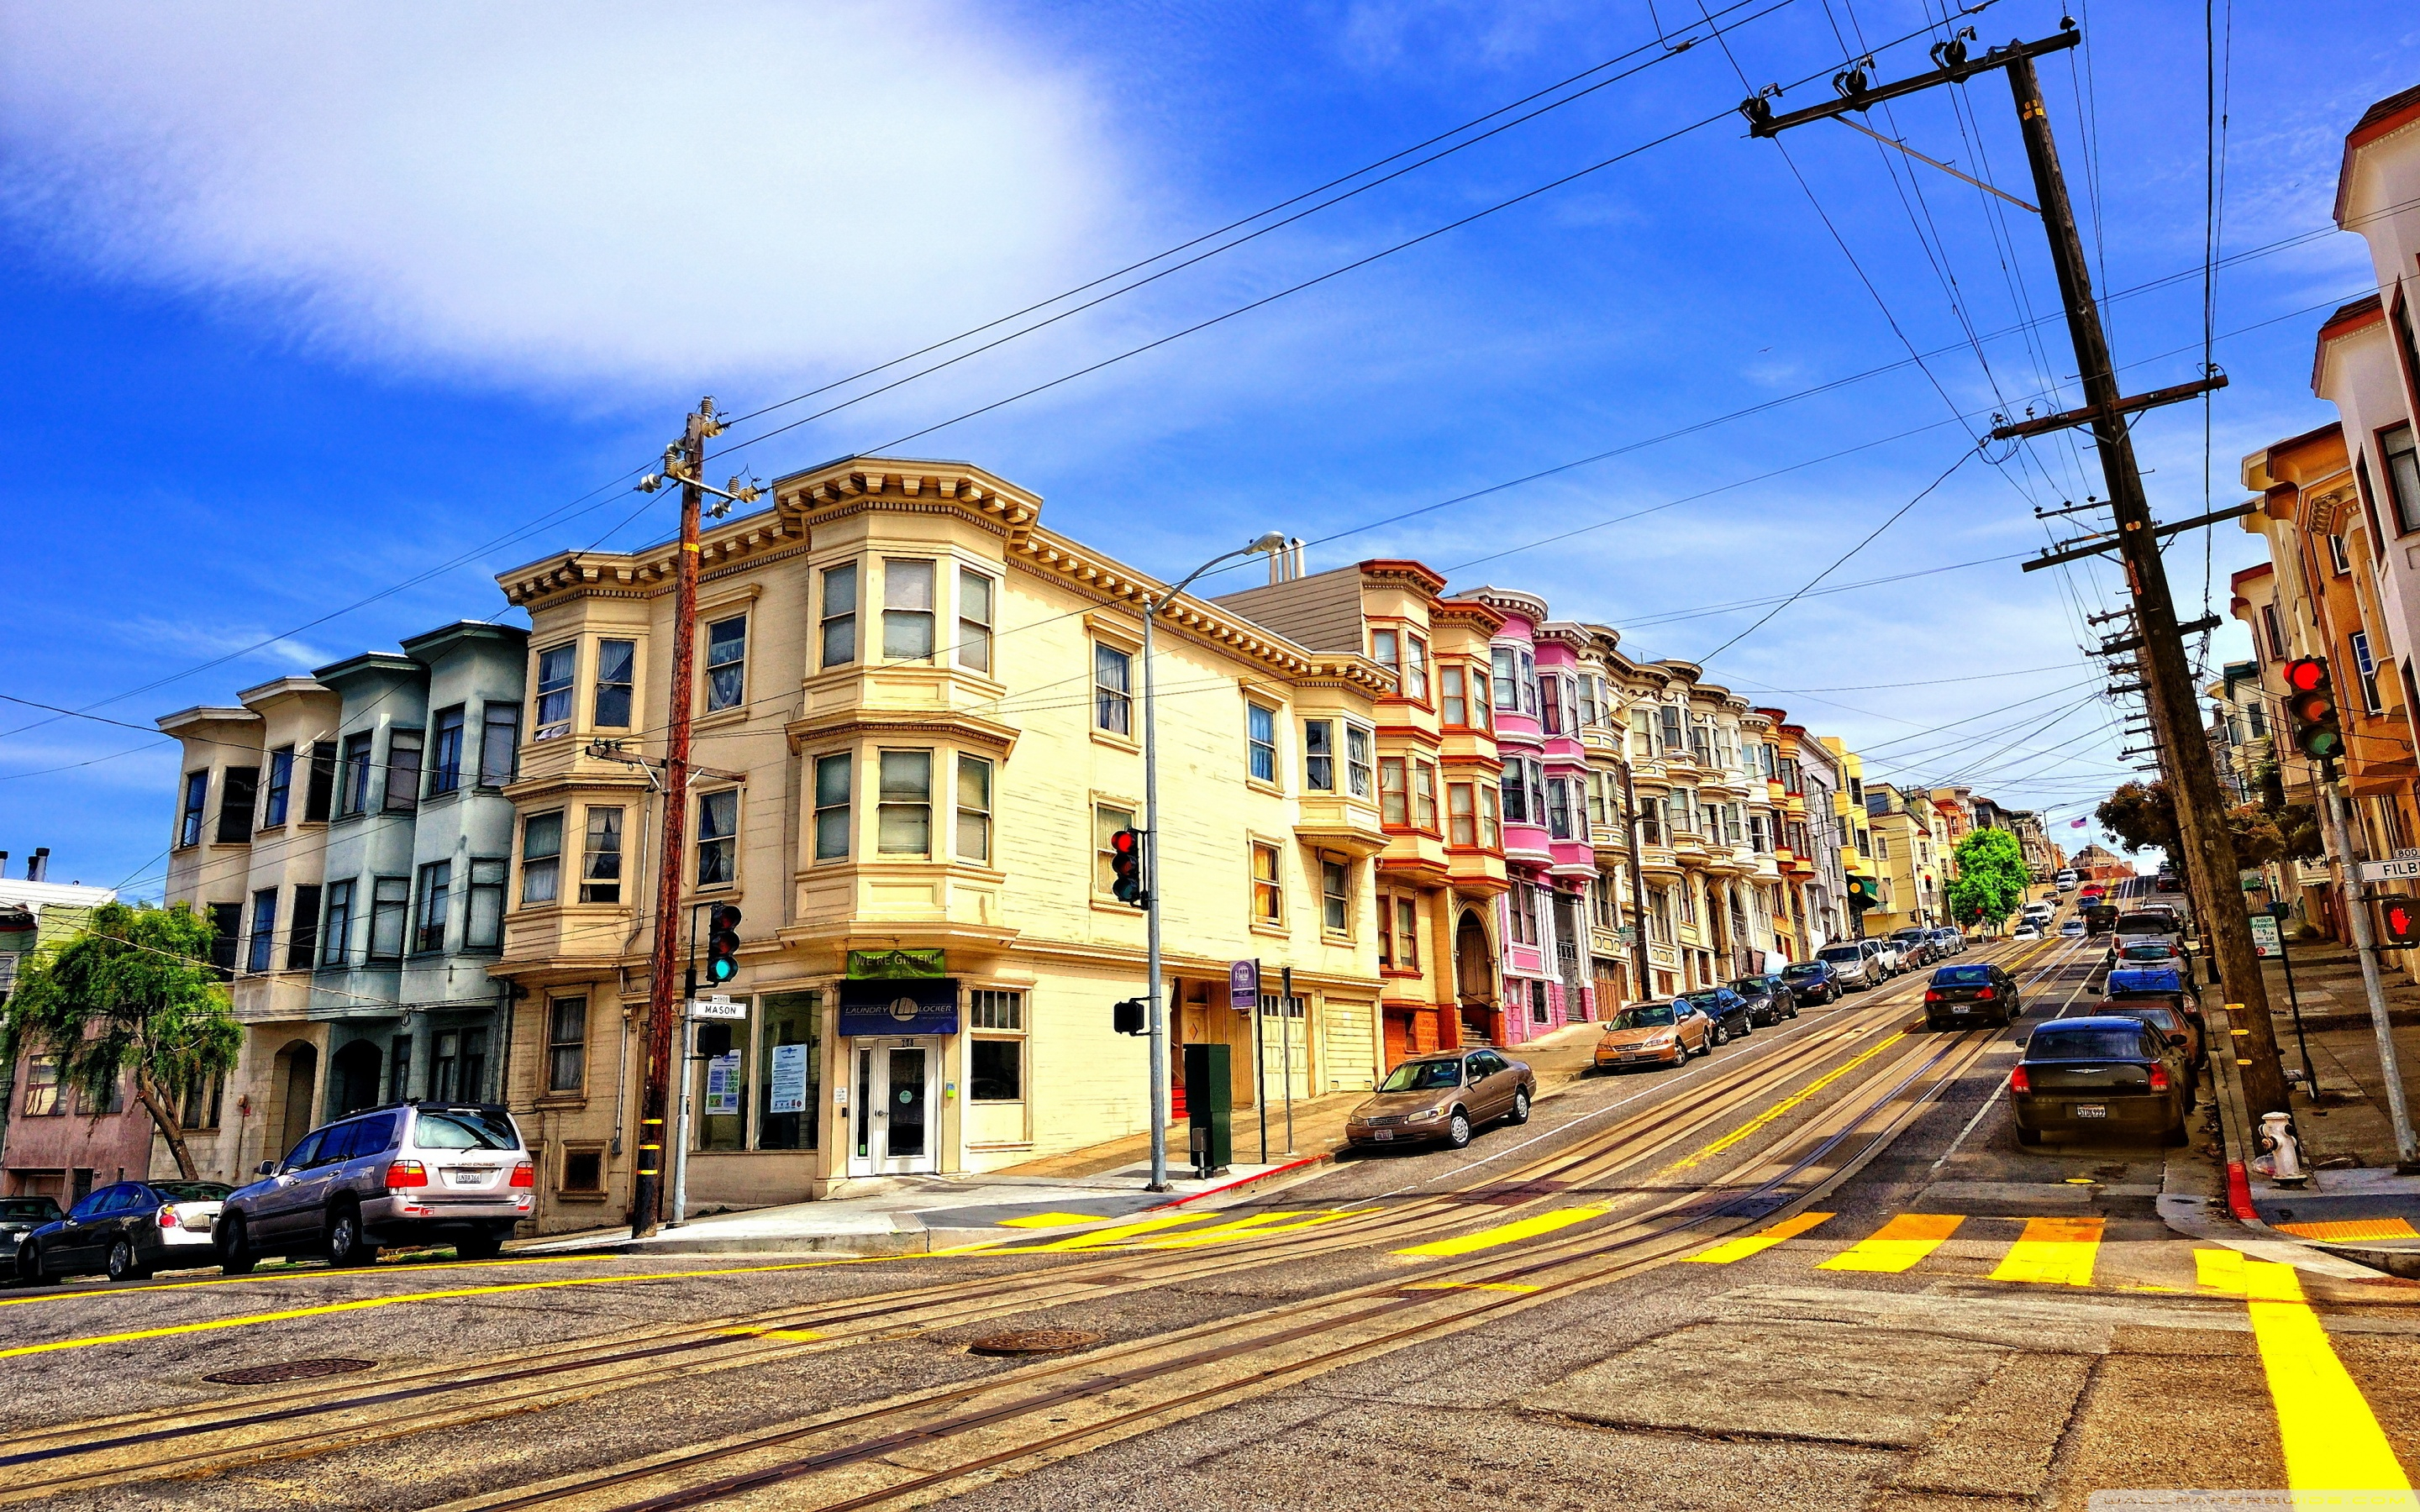 street in san francisco ❤ 4k hd desktop wallpaper for 4k ultra hd